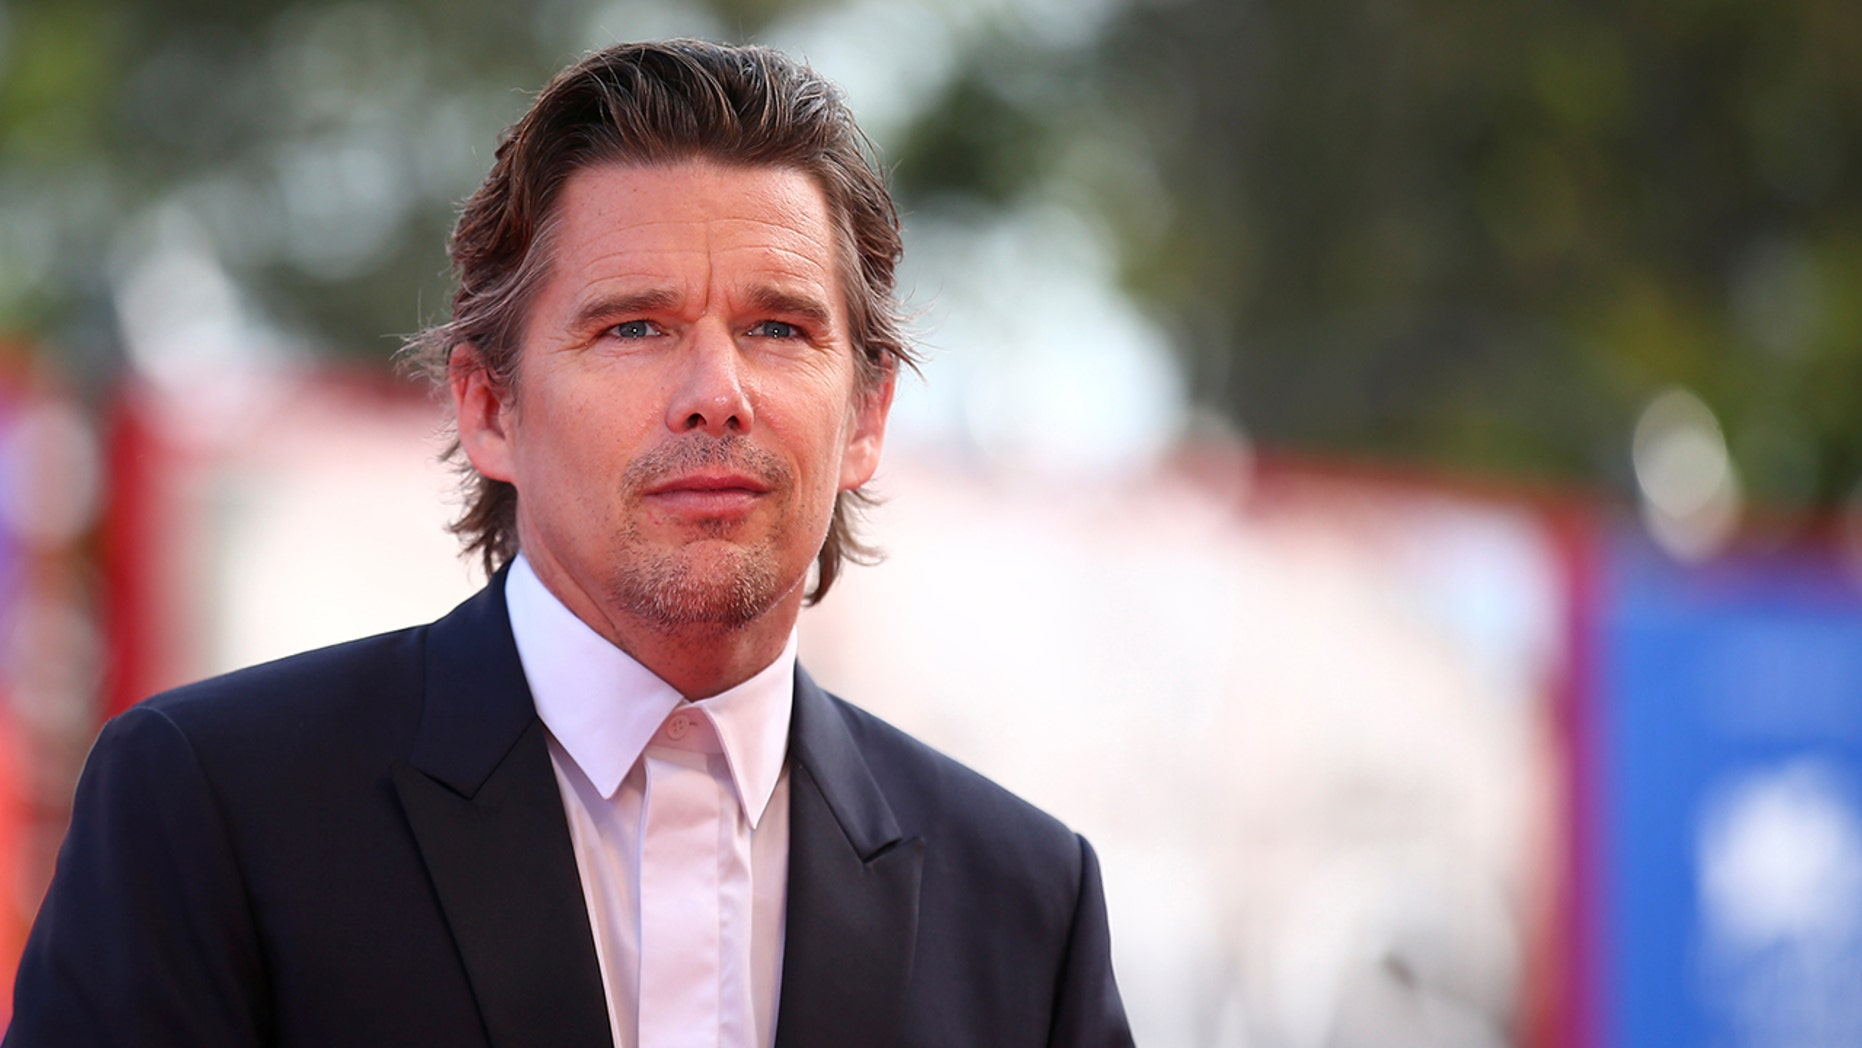 "Actor Ethan Hawke poses during a red carpet event for the movie ""First reformed"" at the 74th Venice Film Festival in Venice, Italy August 31, 2017. REUTERS/Alessandro Bianchi - RC1960E14200"